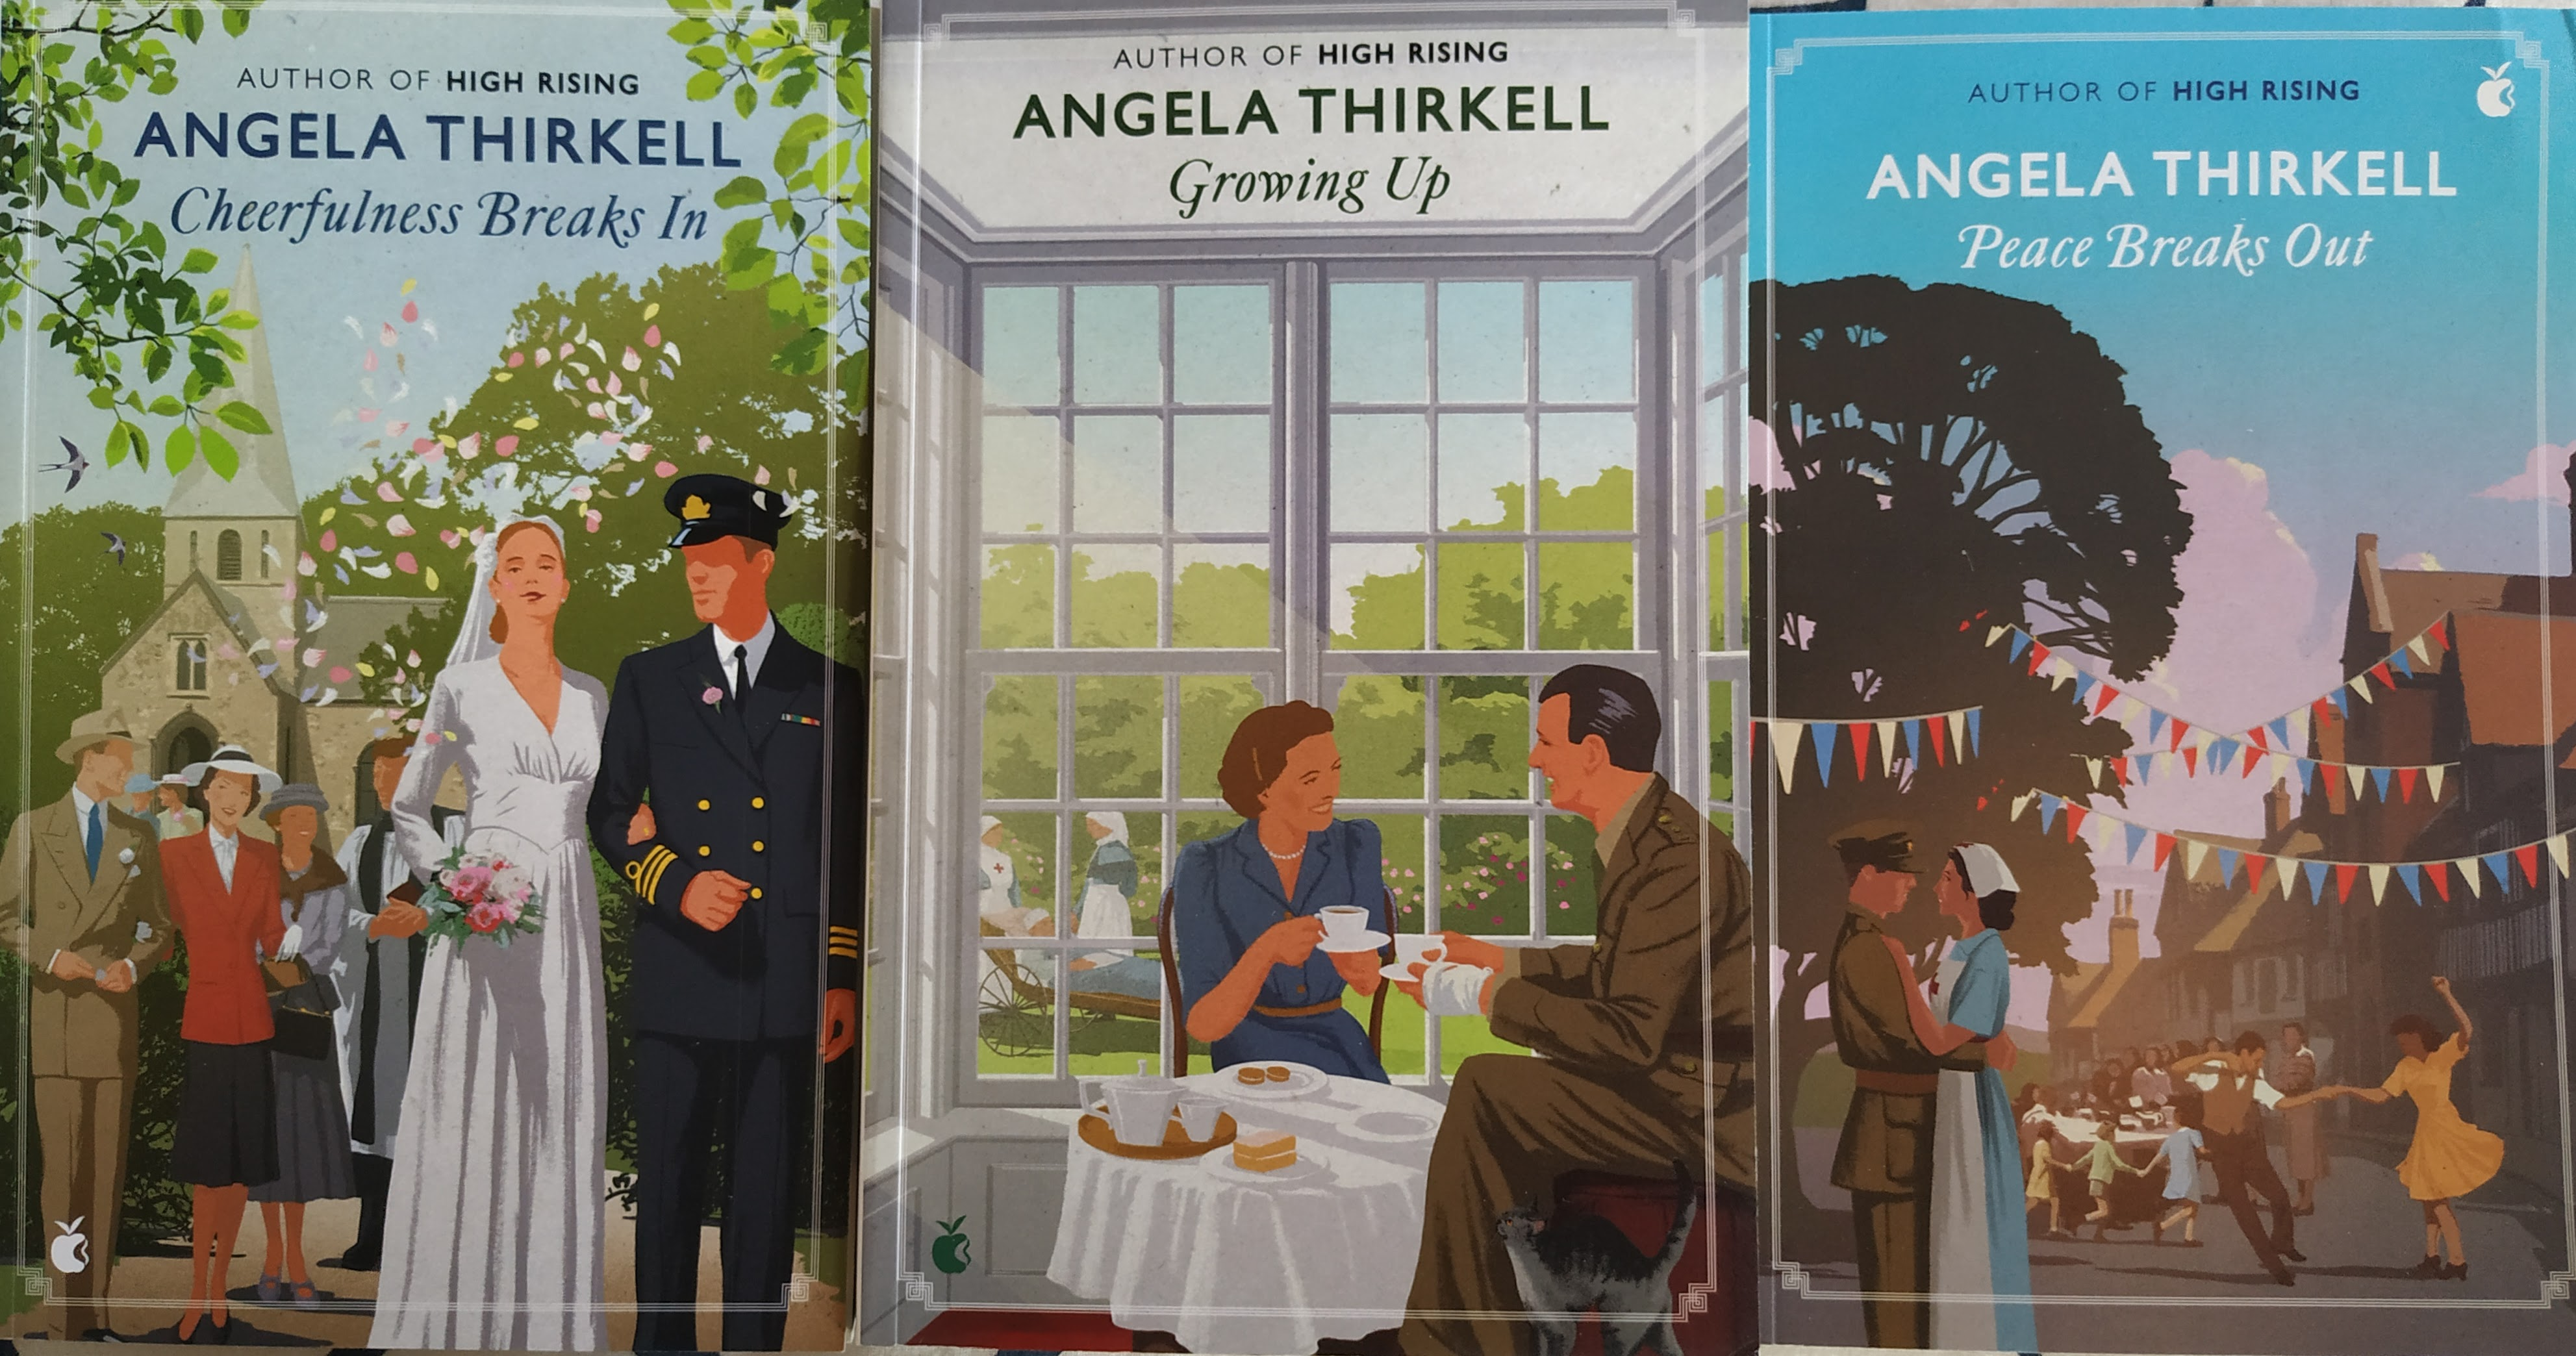 """Book review – Angela Thirkell – """"Cheerfulness Breaks in"""" #20BooksOfSummer20  @ViragoBooks 